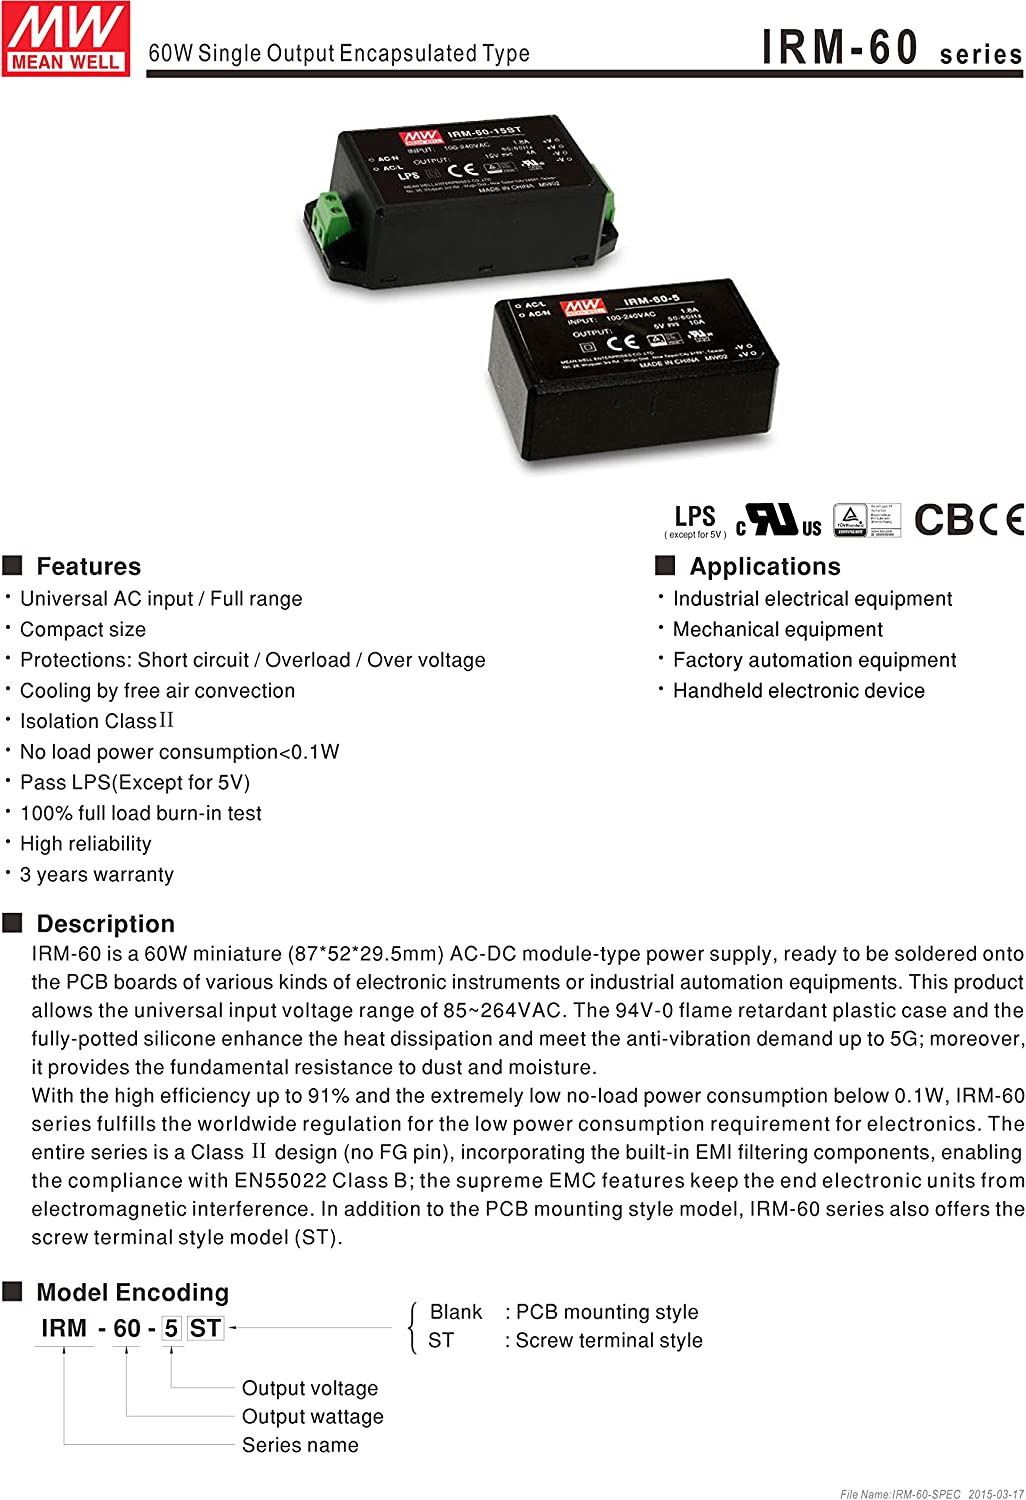 MW Mean Well IRM-60-12ST 12V 5A Miniature Encapsulated Type Green Open Frame Power Supplies